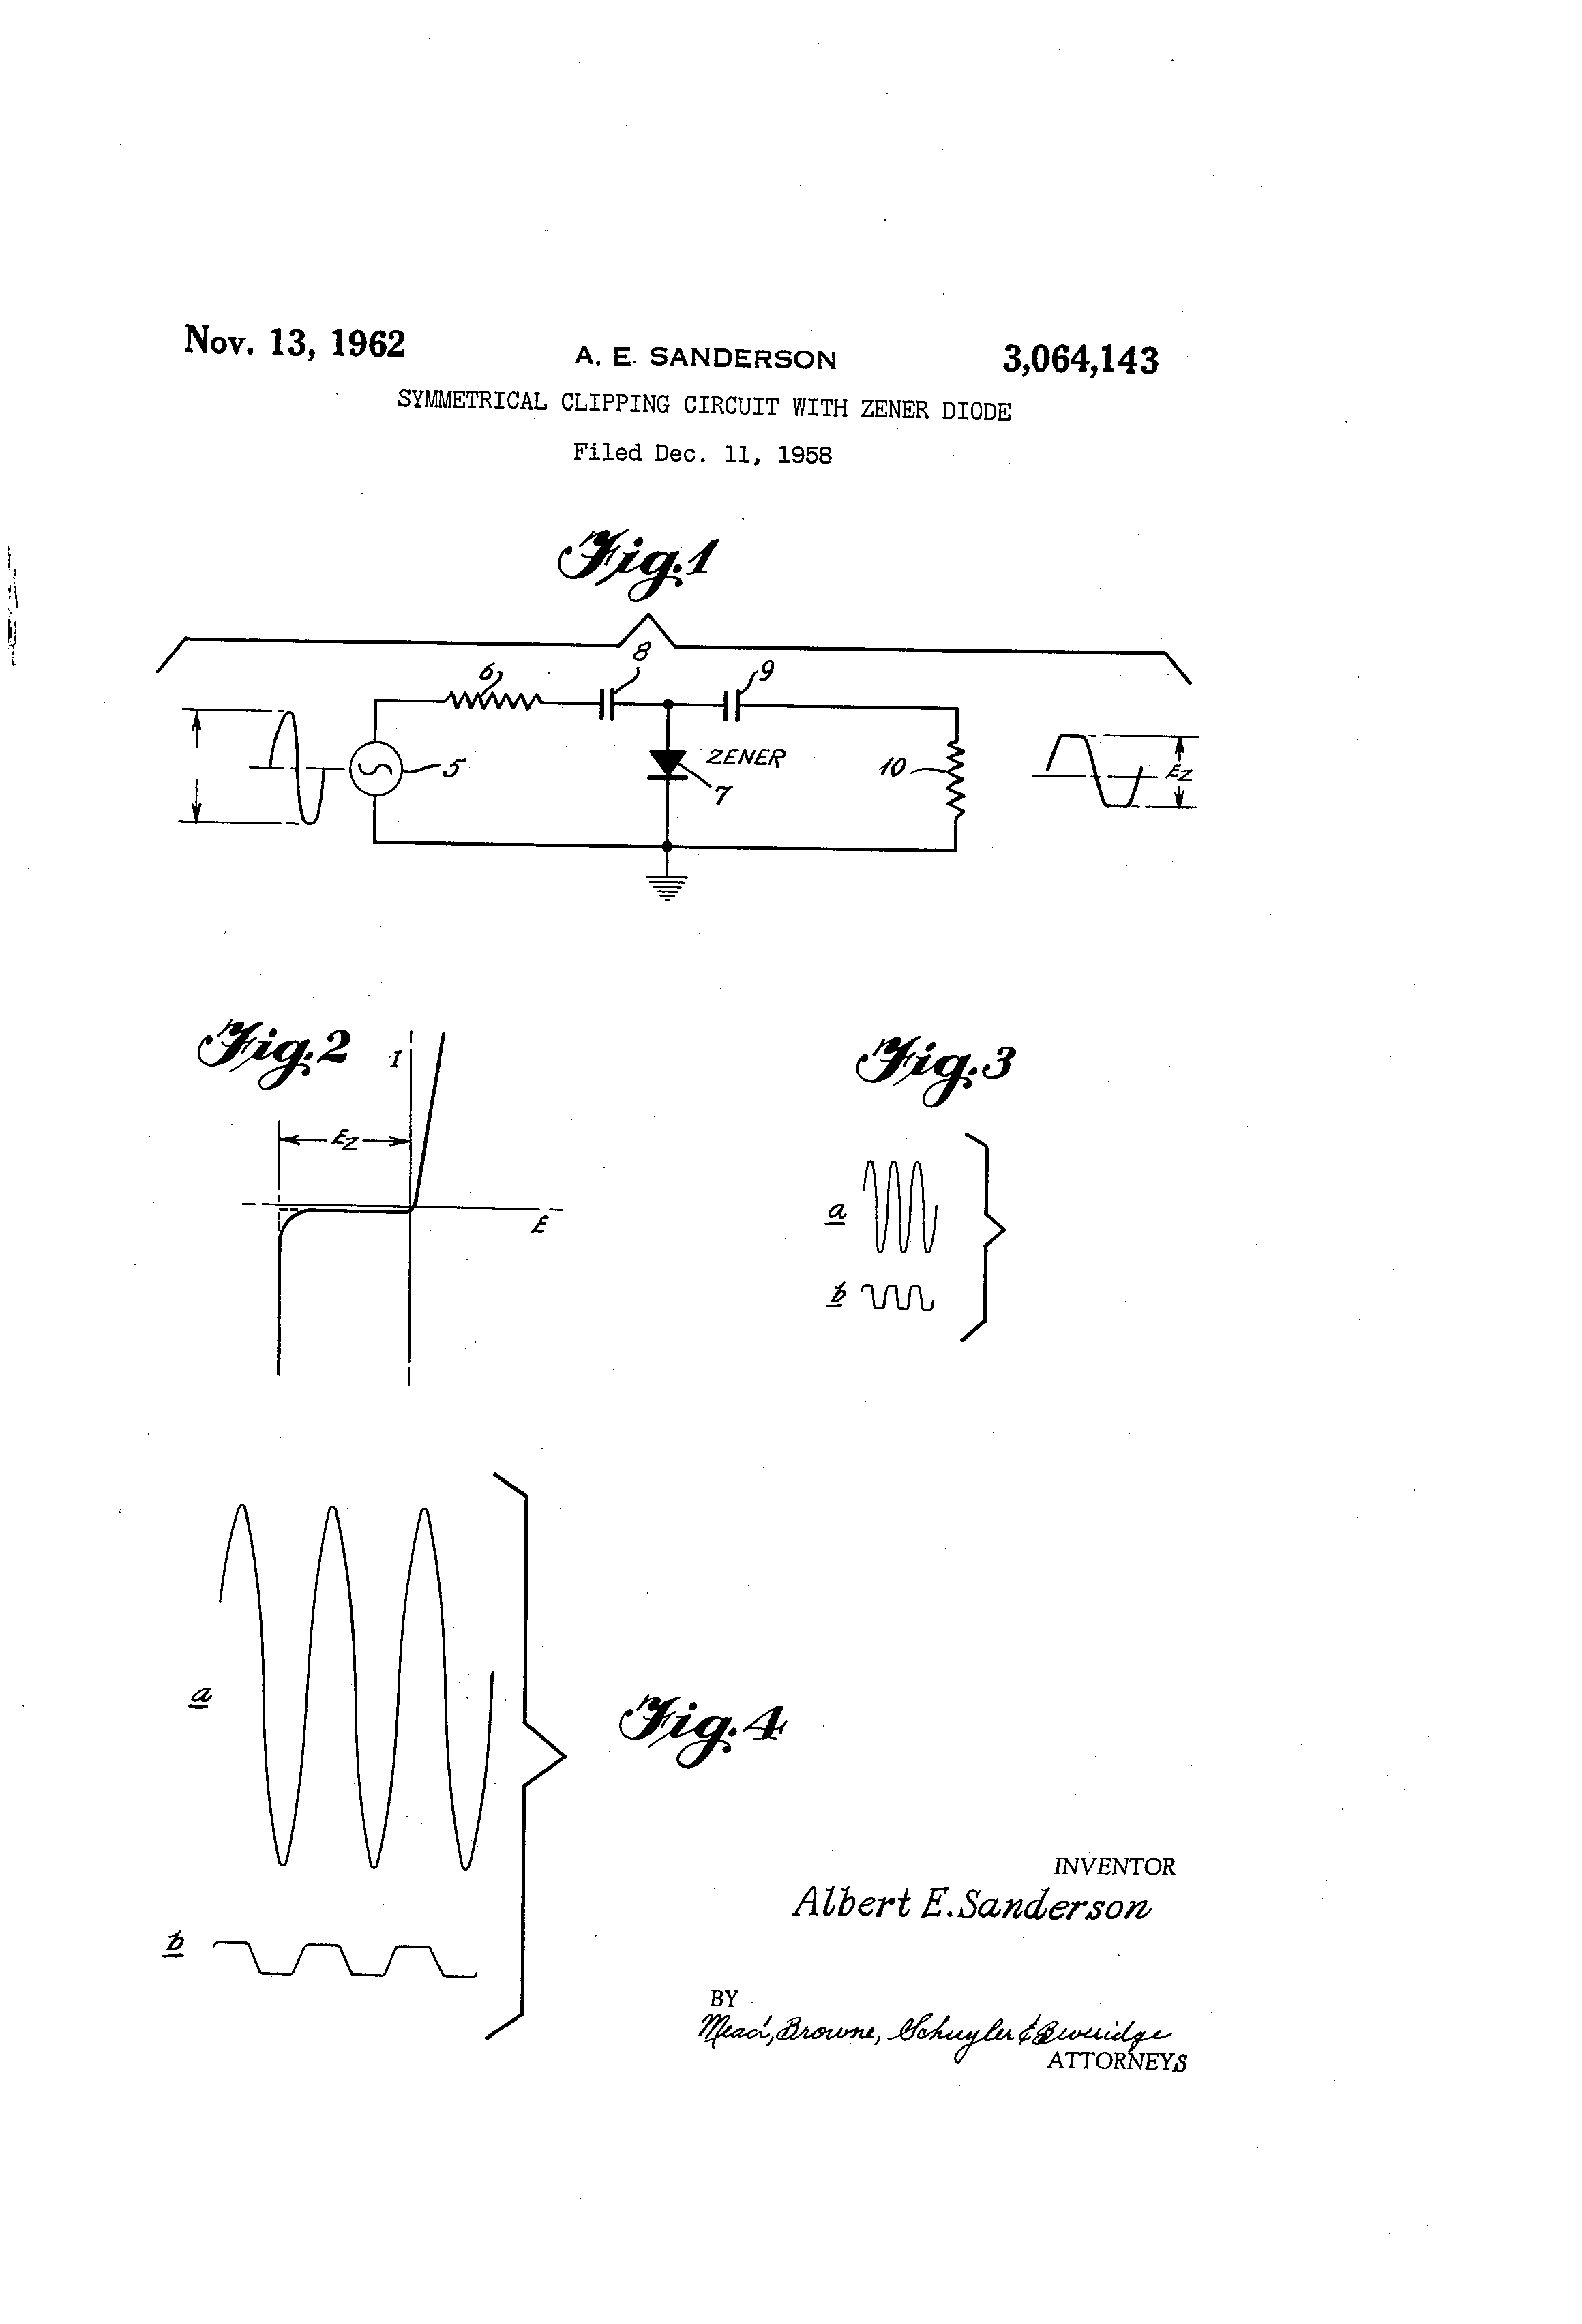 Patent Us3064143 Symmetrical Clipping Circuit With Zener Diode Limit The Current But How So And Why Do We Need It For A Drawing